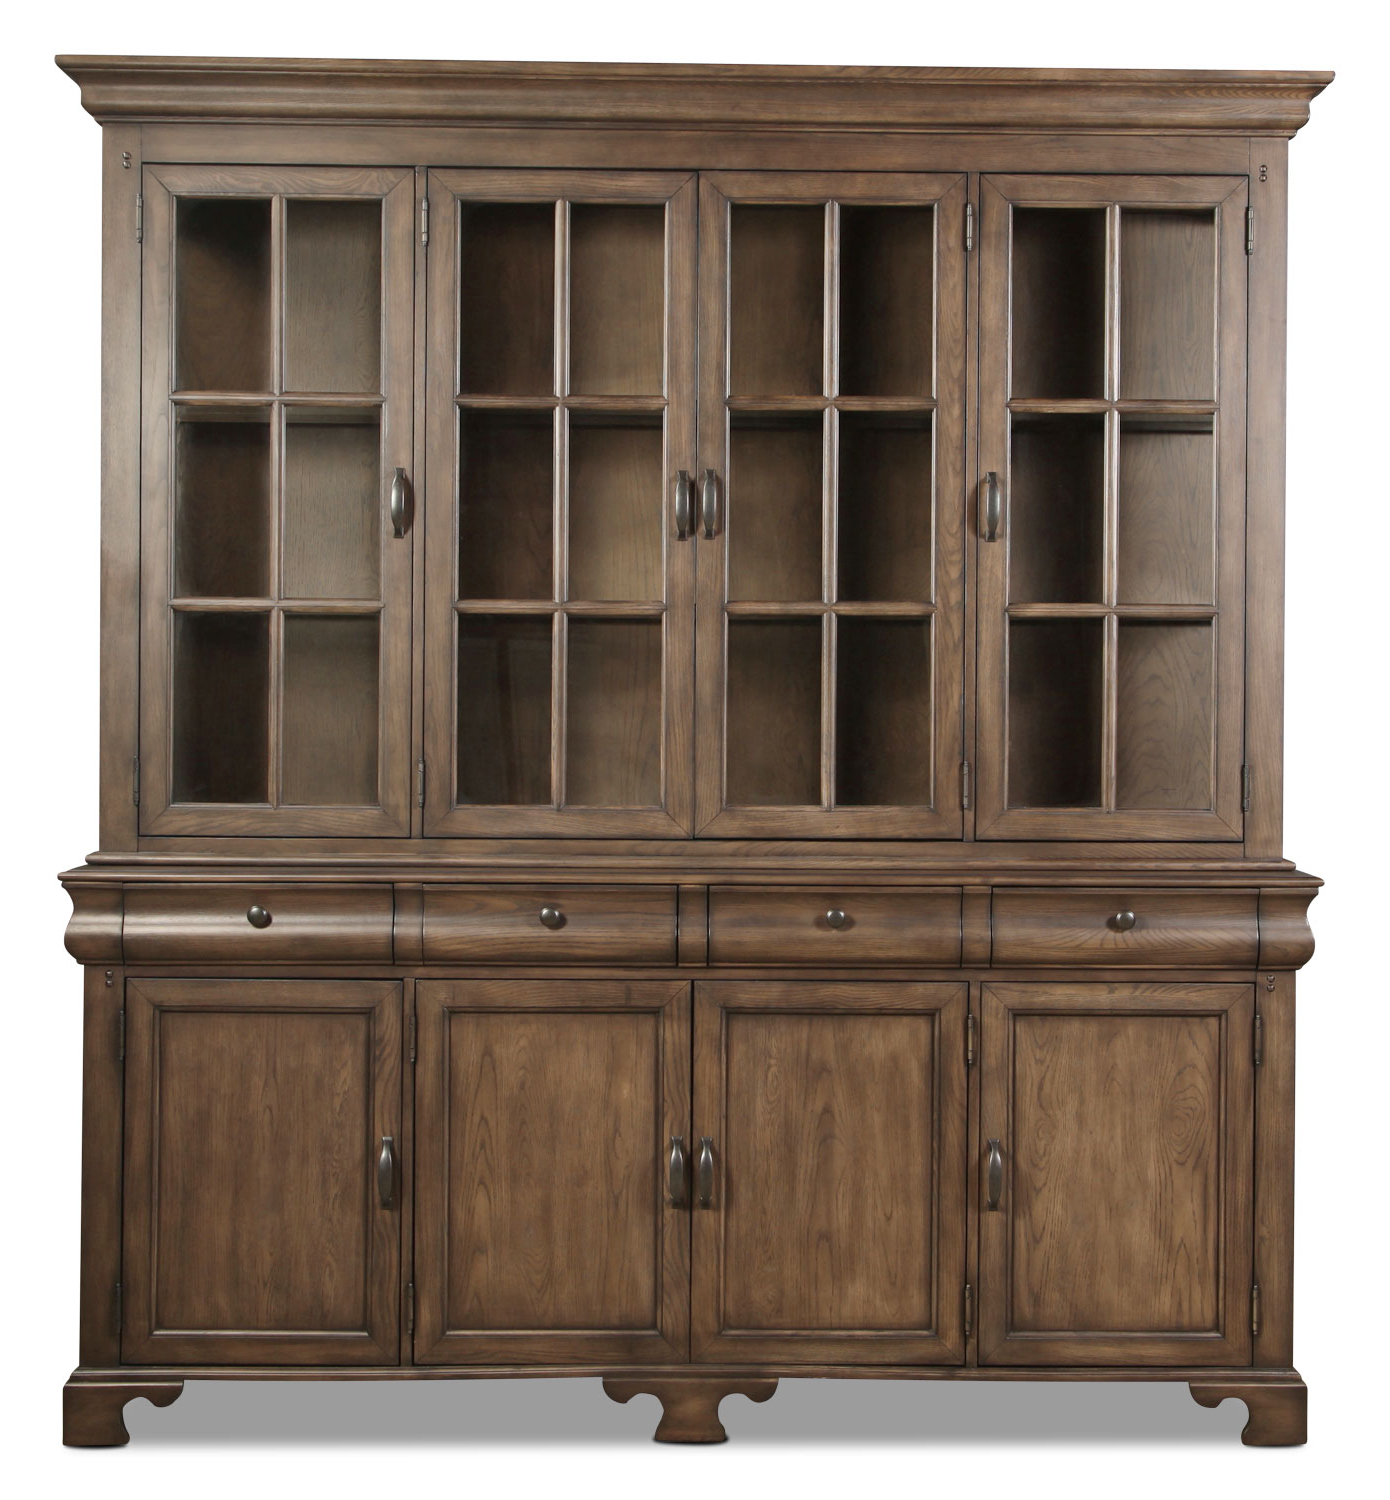 Most Popular Leven Wine Sideboards For Cabinets & Storage (View 14 of 20)